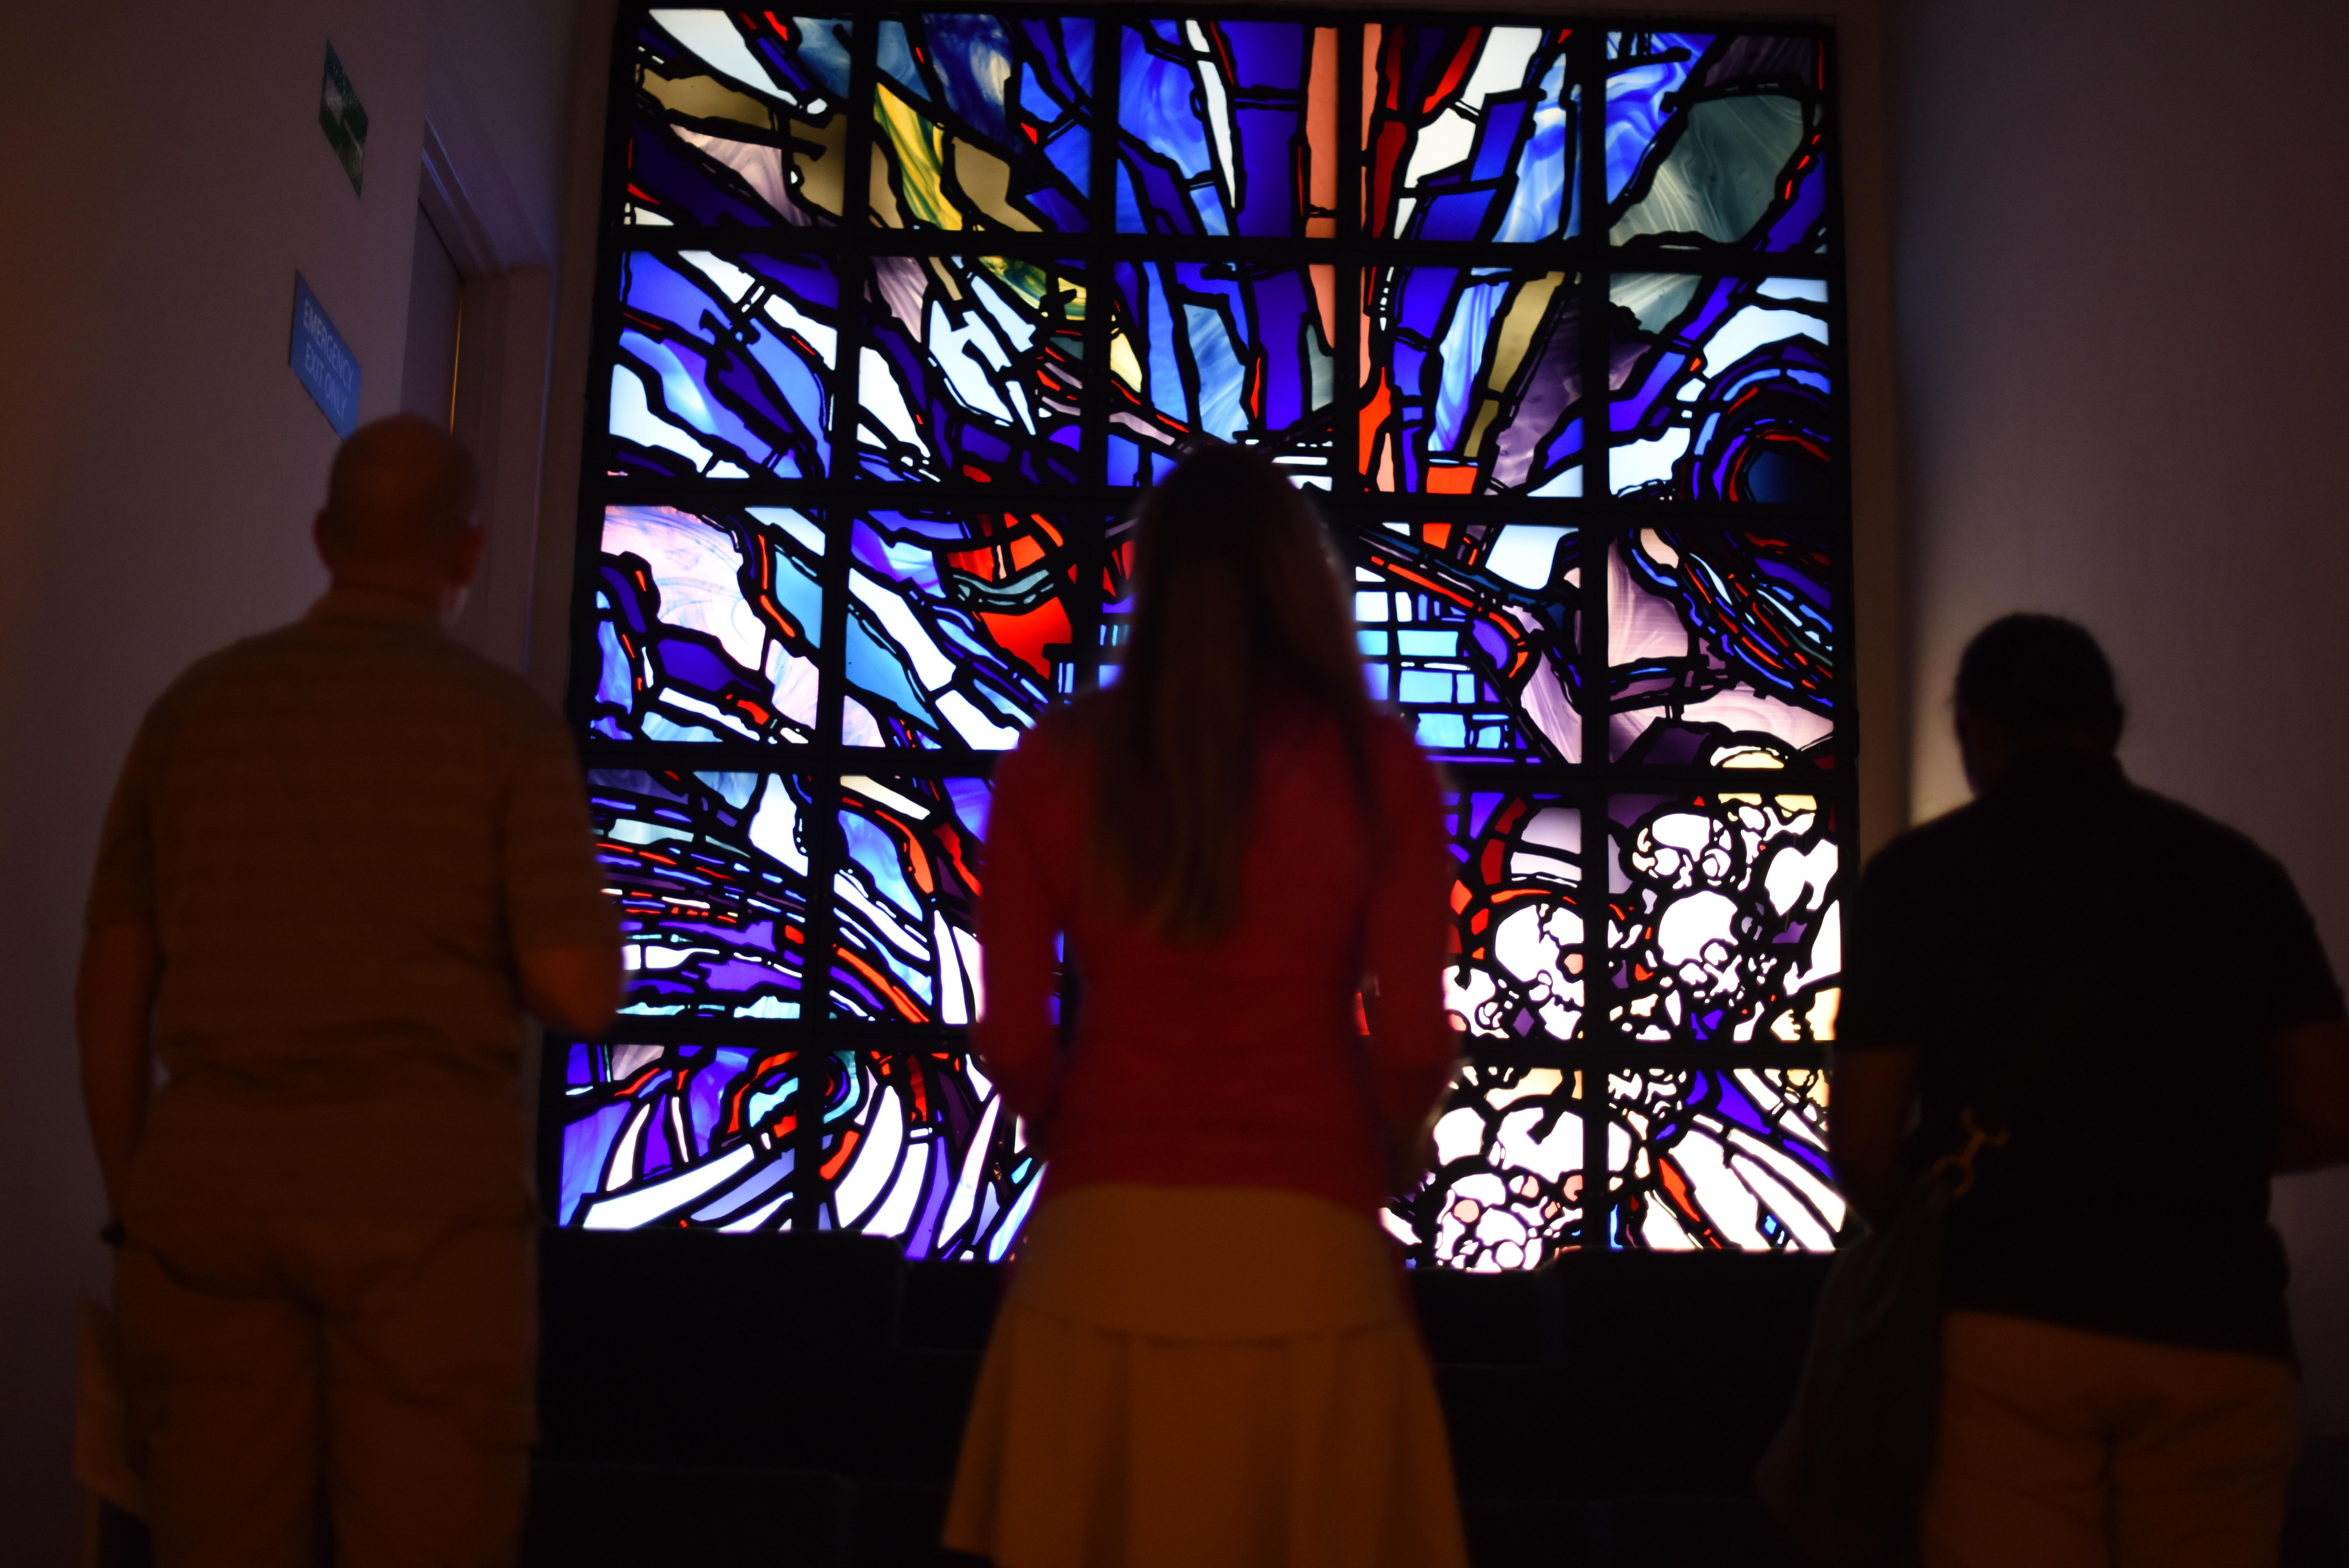 U.S. Navy Lt. Steven Hunt, U.S. Marine Corps Maj. Bevin Keen, and Navy Senior Chief Cheryl Norris contemplate a stained glass art installation at the Genocide Memorial Museum in Kigali, Rwanda, Dec. 16, 2015. While on a mission to Rwanda, representatives from Combined Joint Task Force–Horn of Africa visited the museum to learn more about the 1994 genocide and to pay respects at the museum's mass grave site where 250,000 victims were relocated after the atrocities. (U.S. Air Force photo by Staff Sgt. Victoria Sneed)